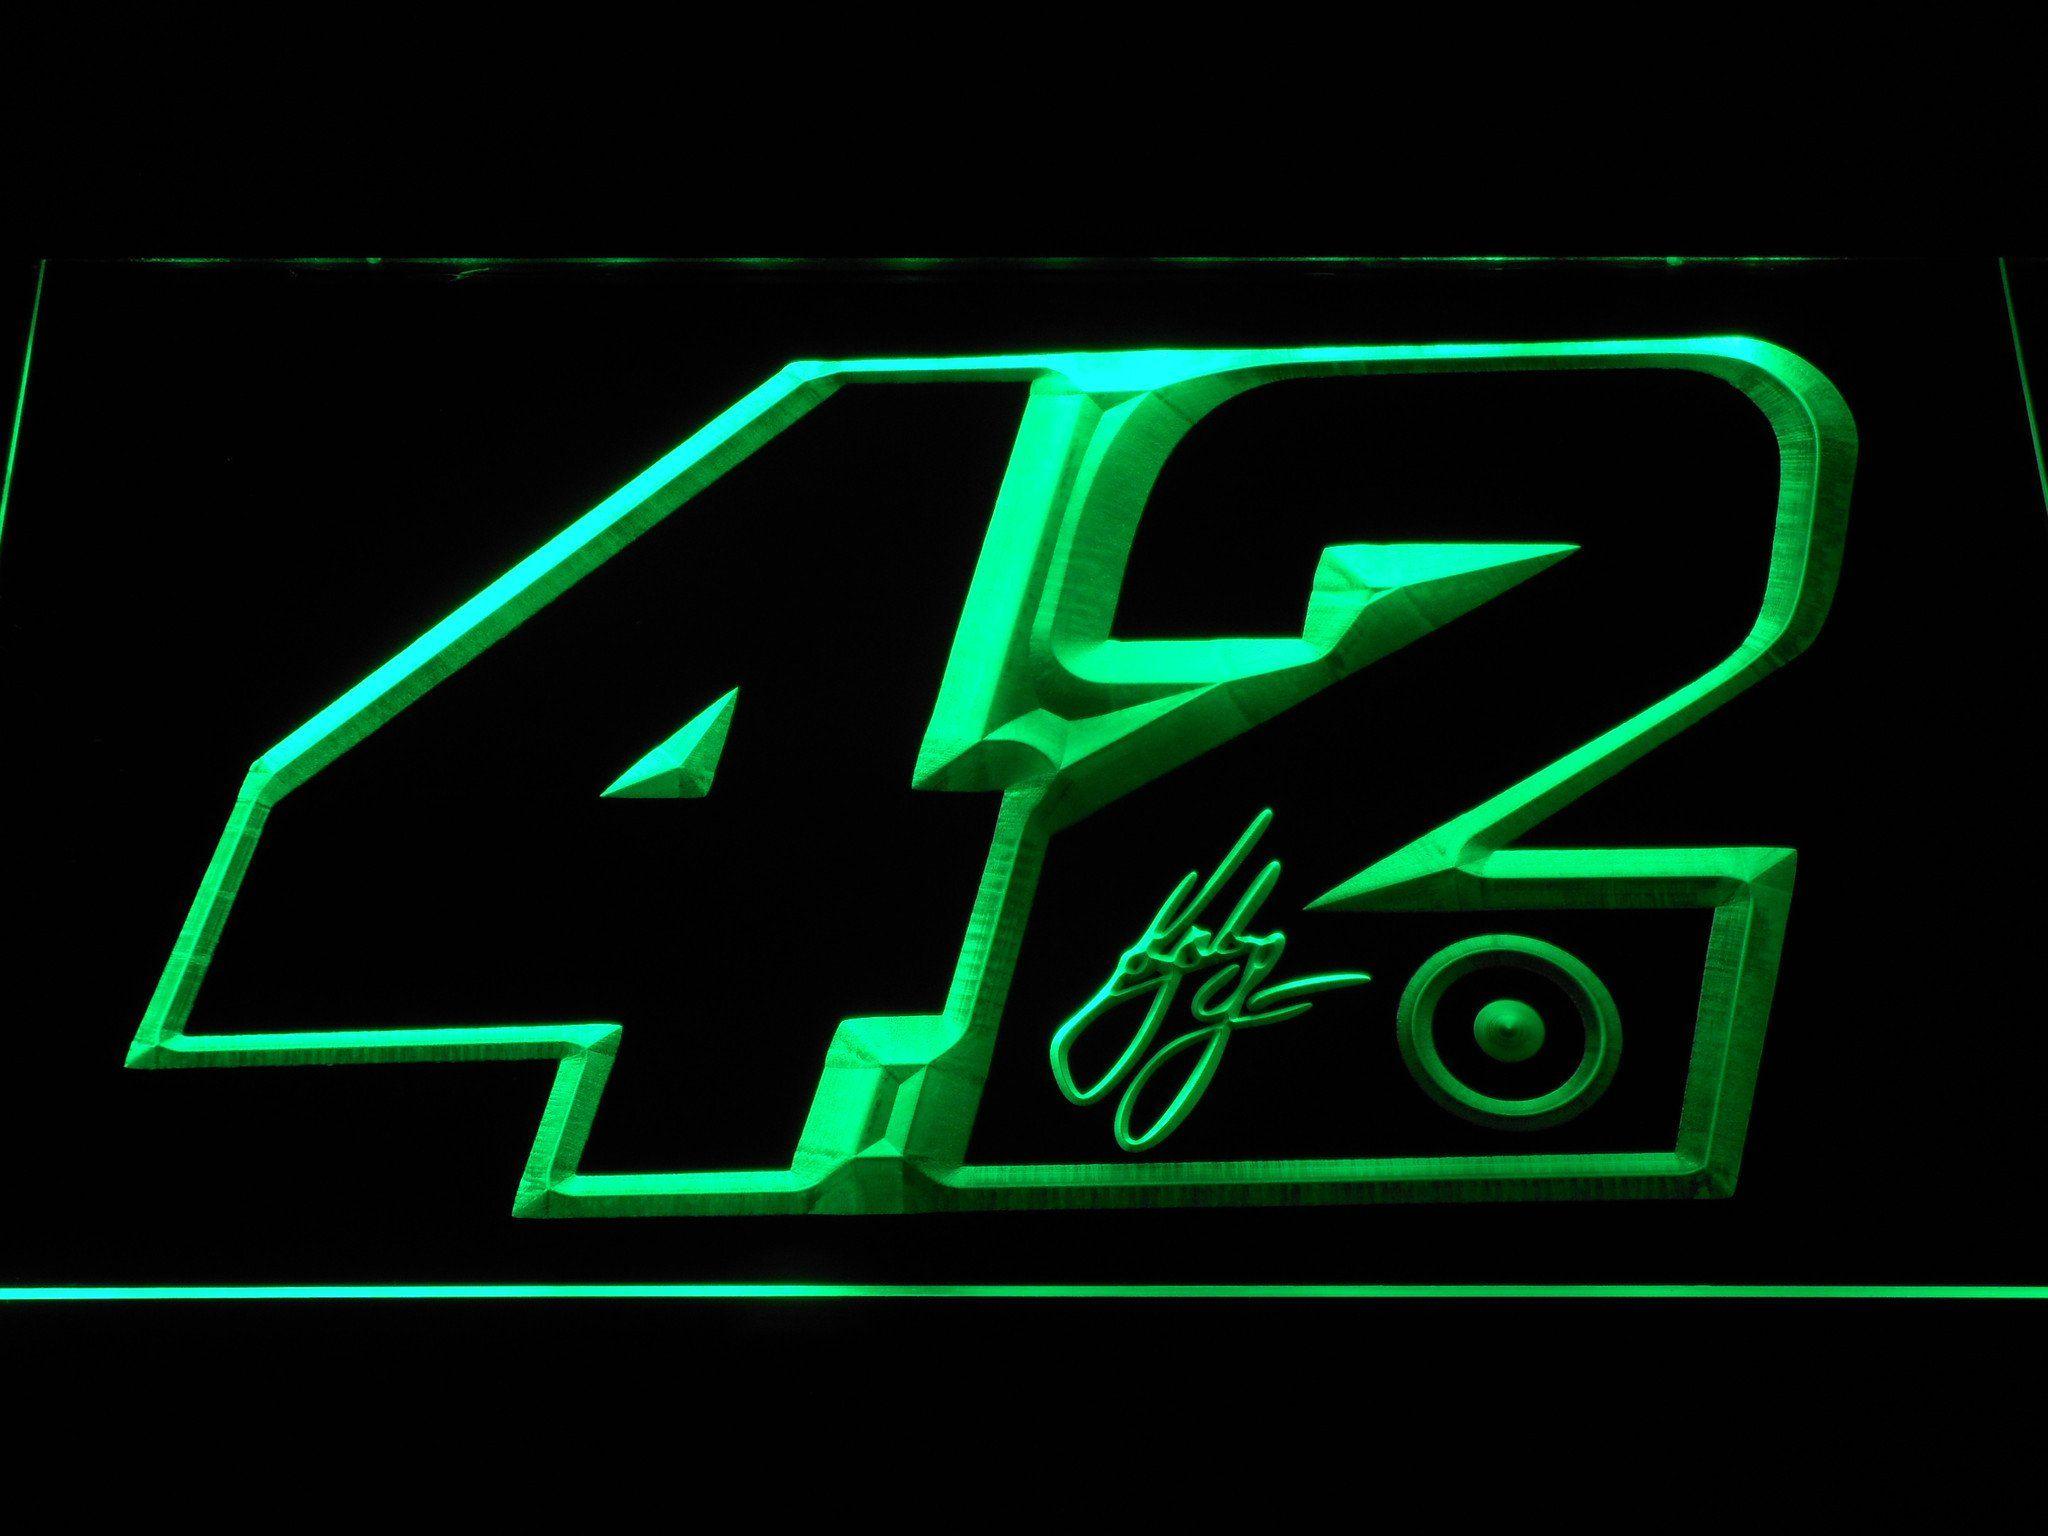 Kyle Larson Signature 42 LED Neon Sign Led signs, Neon